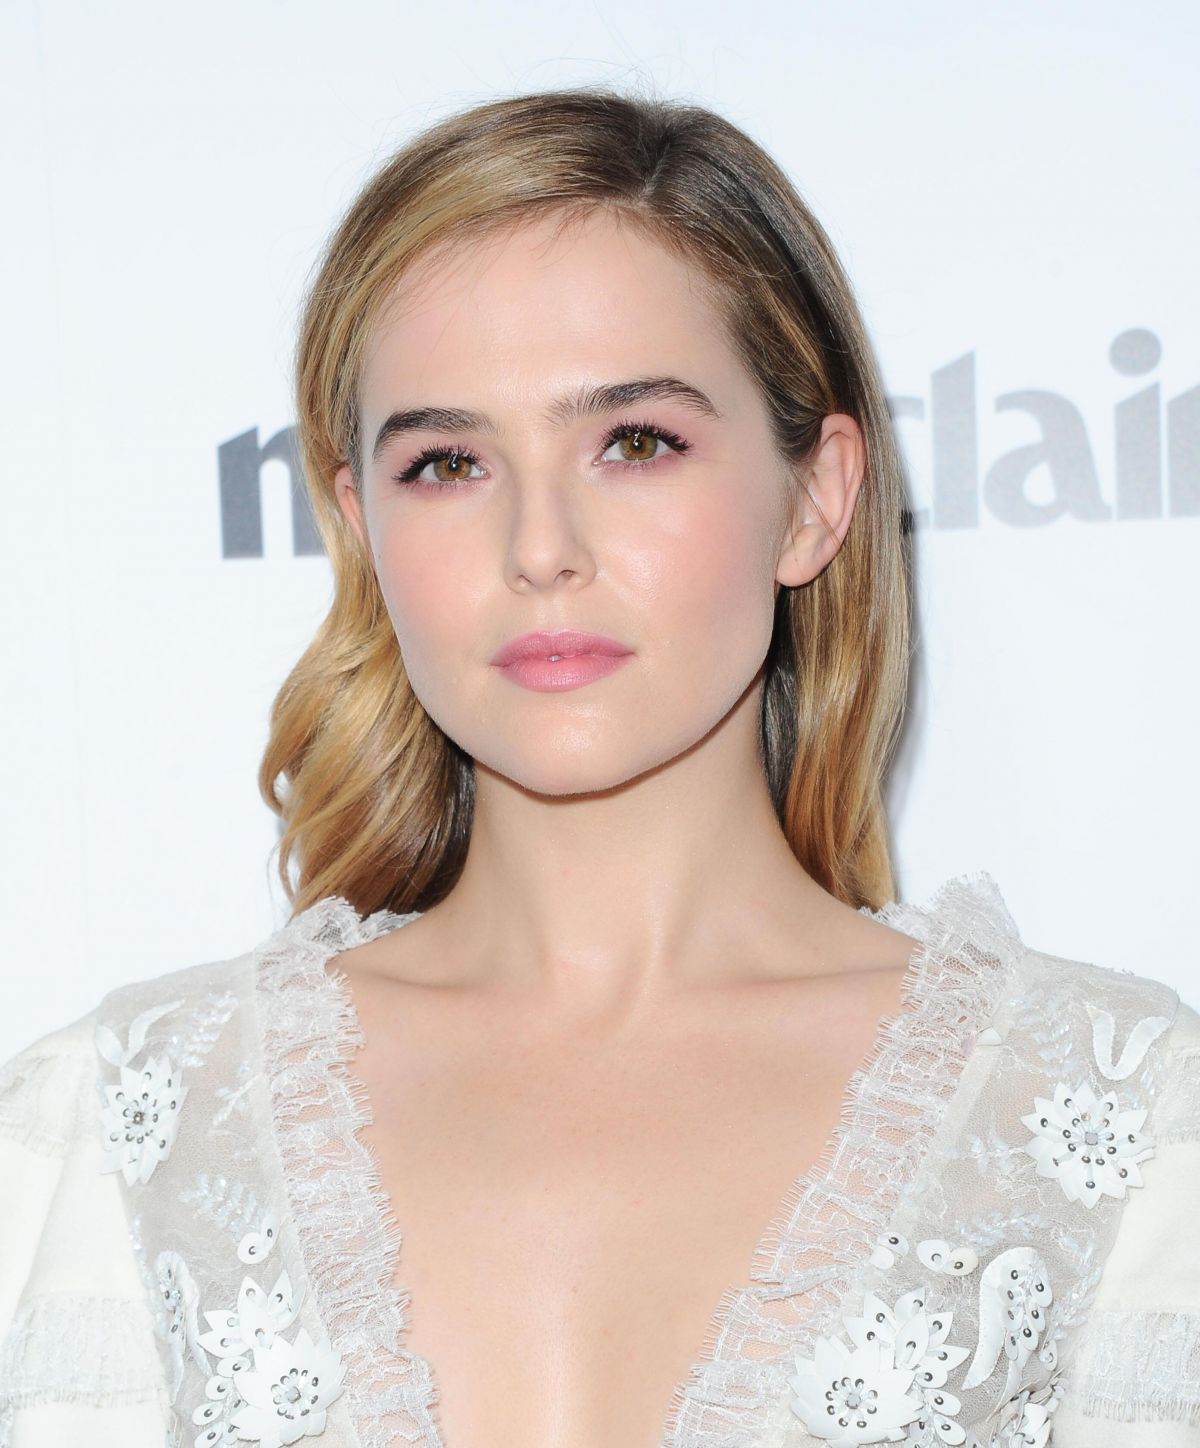 ZOEY DEUTCH at Marie Claire Celebrates Fresh Faces in Los Angeles 04/21/2017